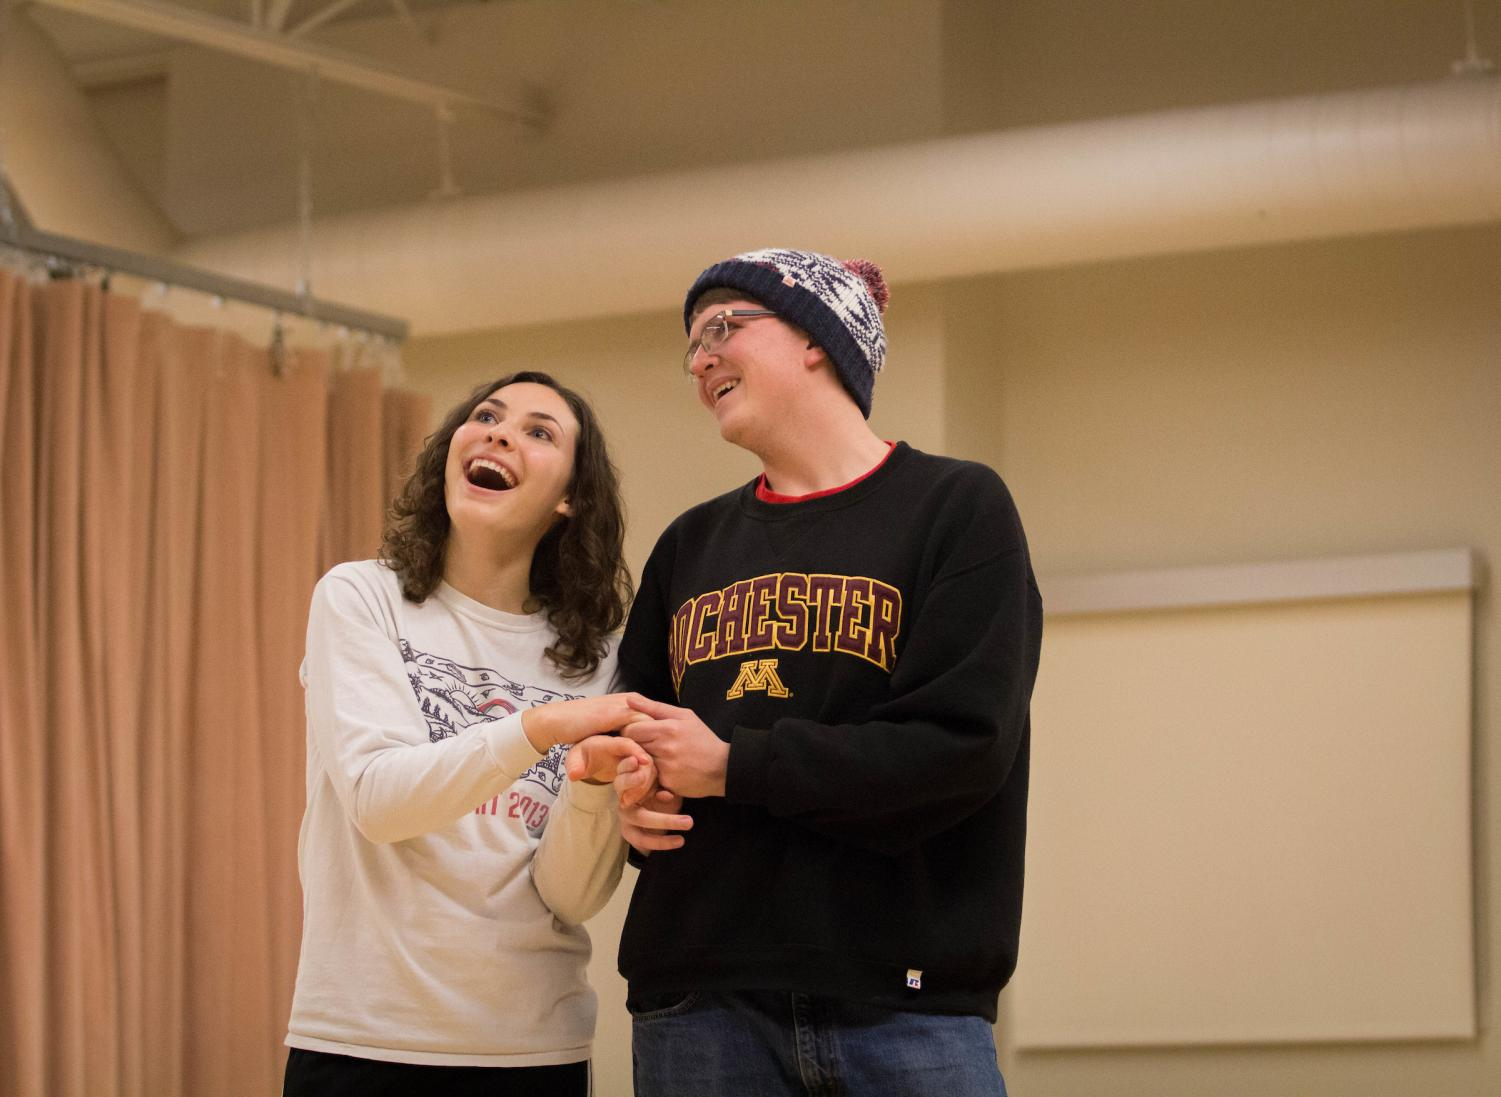 Annika Peterson ('19) and Karl Nycklemoe ('18) show affection during a scene.